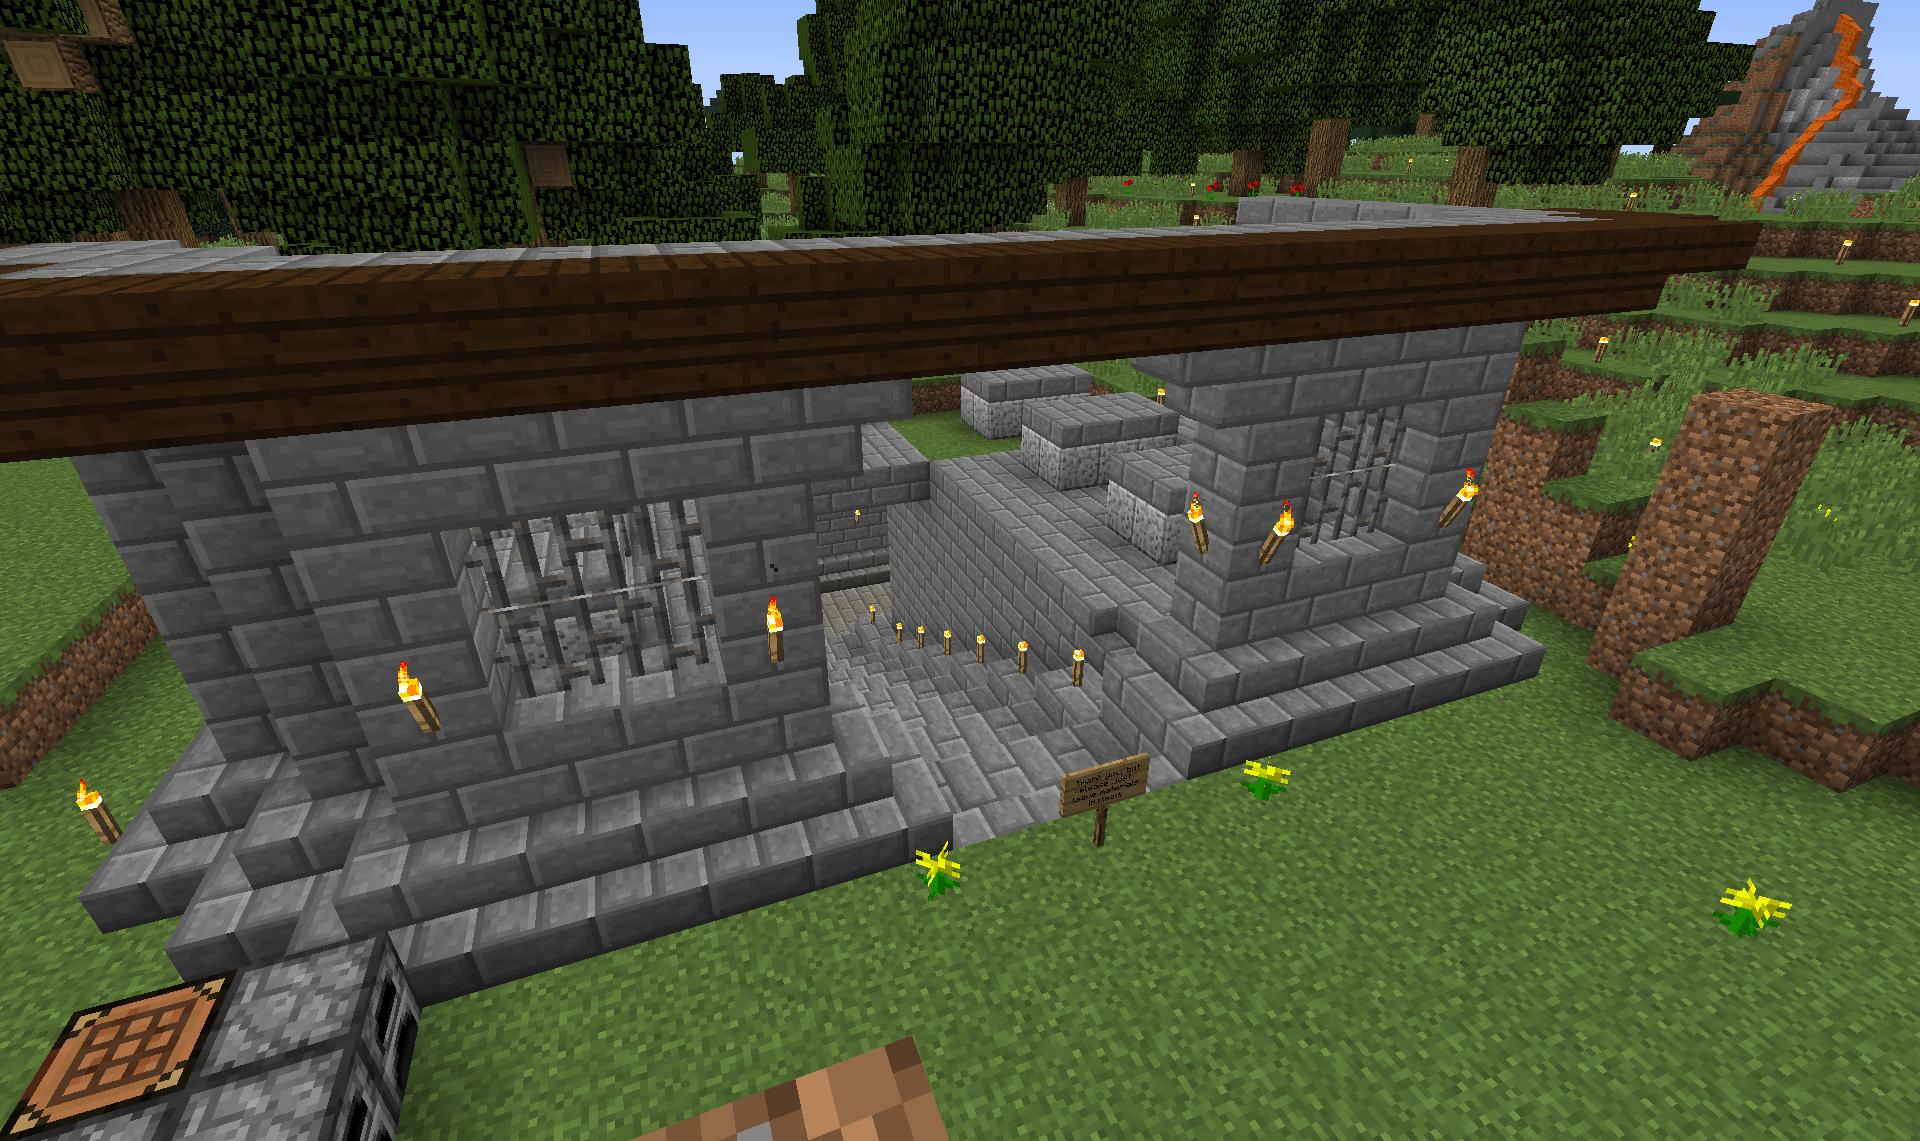 The final thing I have to show you guys is my mausoleum. This is where I'll be building my nether portal as well in the basement.